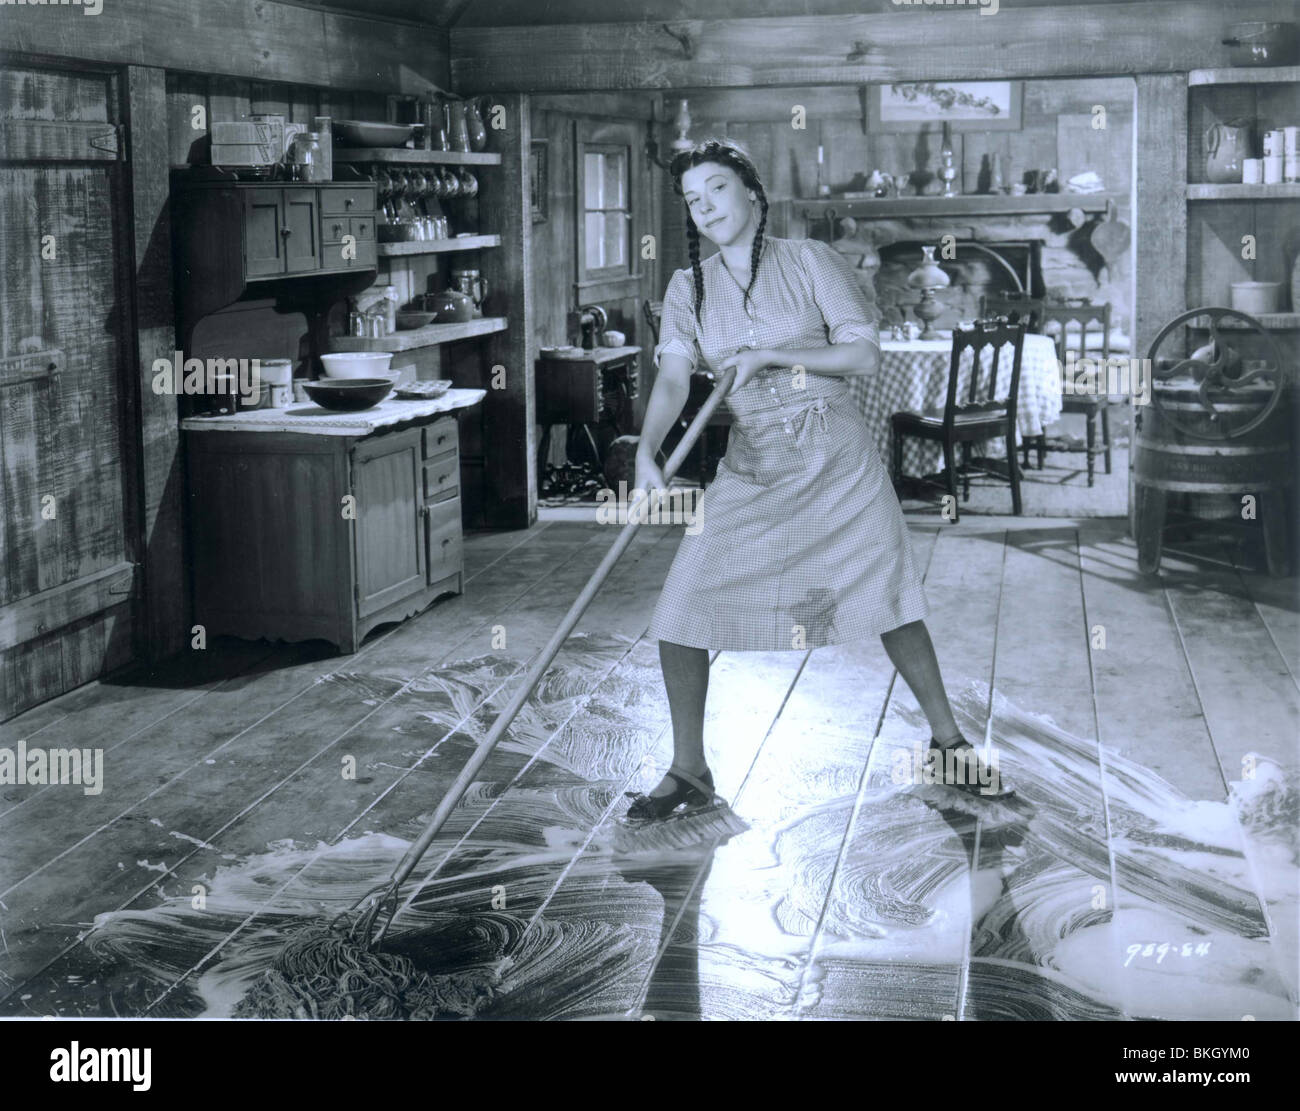 SCATTERBRAIN (1940) RUTH DONNELLY SCTB 002P - Stock Image